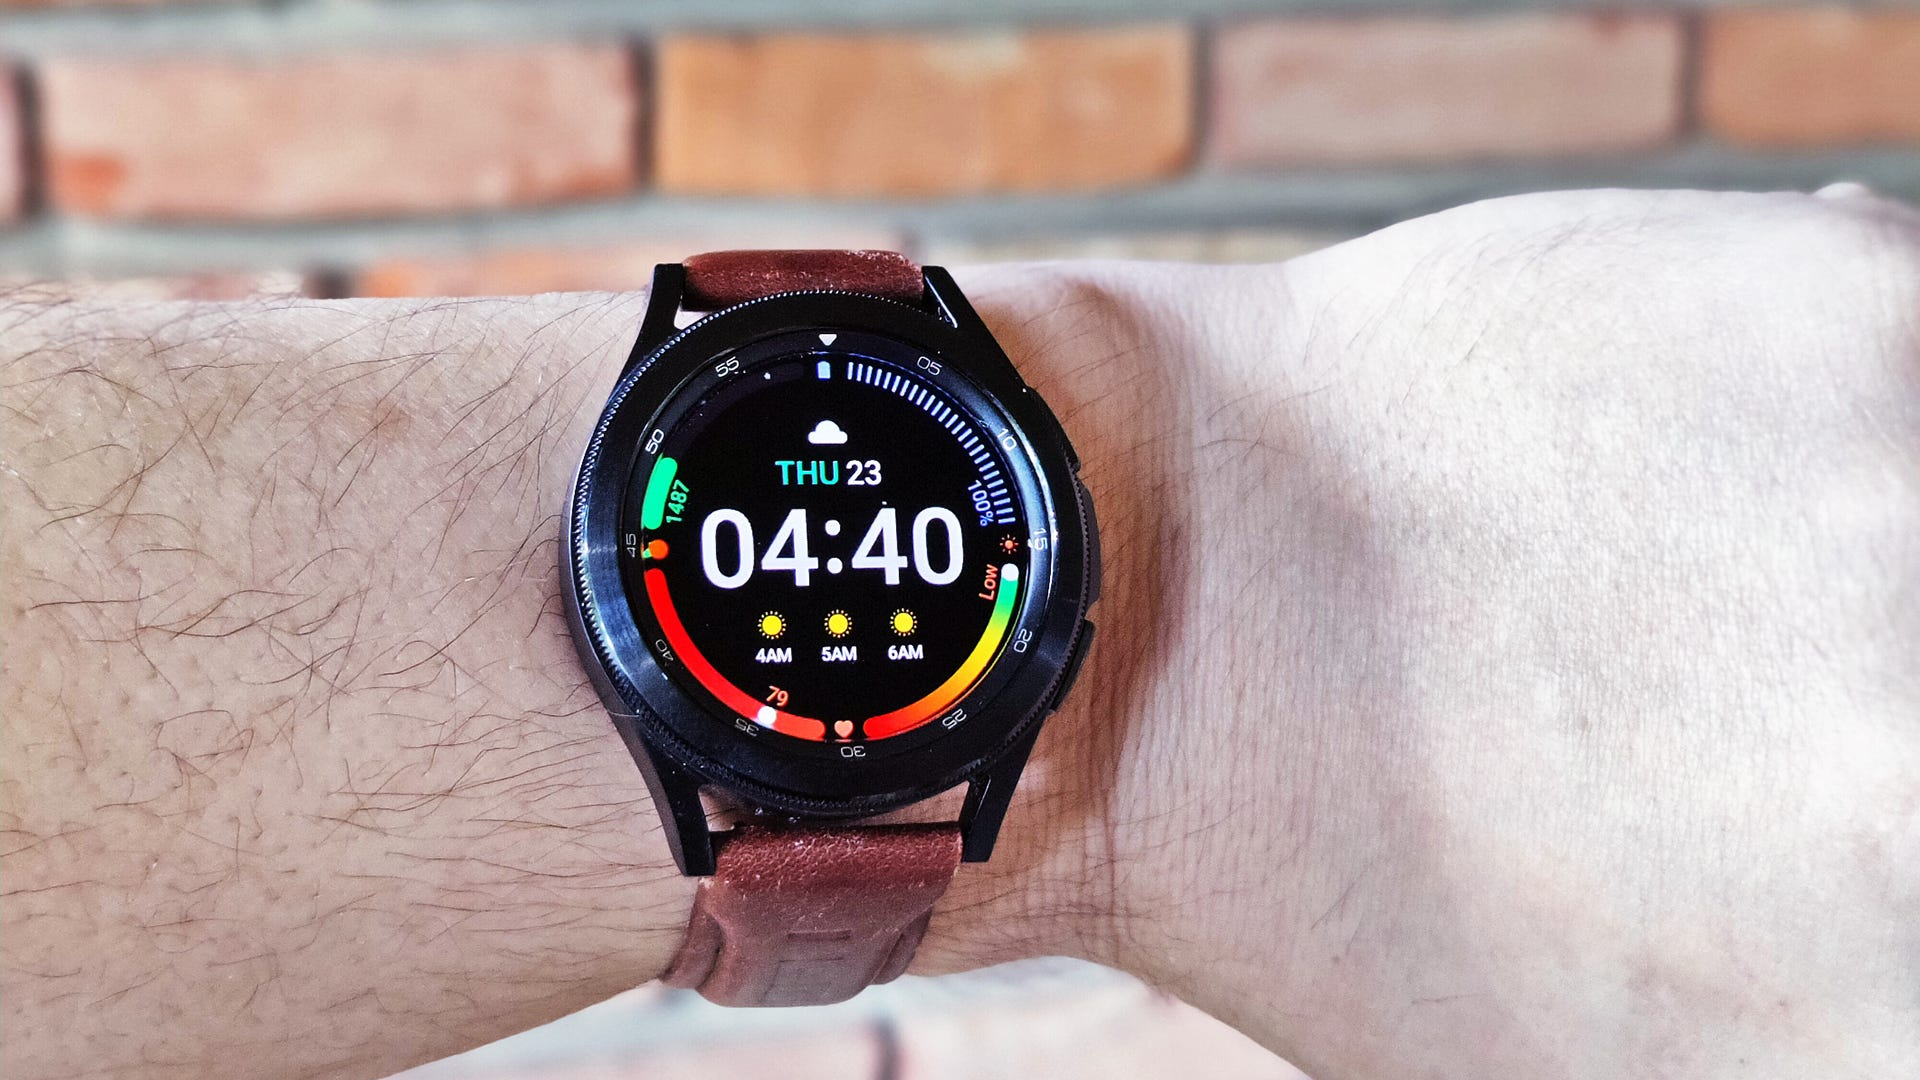 A closeup of the Galaxy Watch 4 with a leather band.